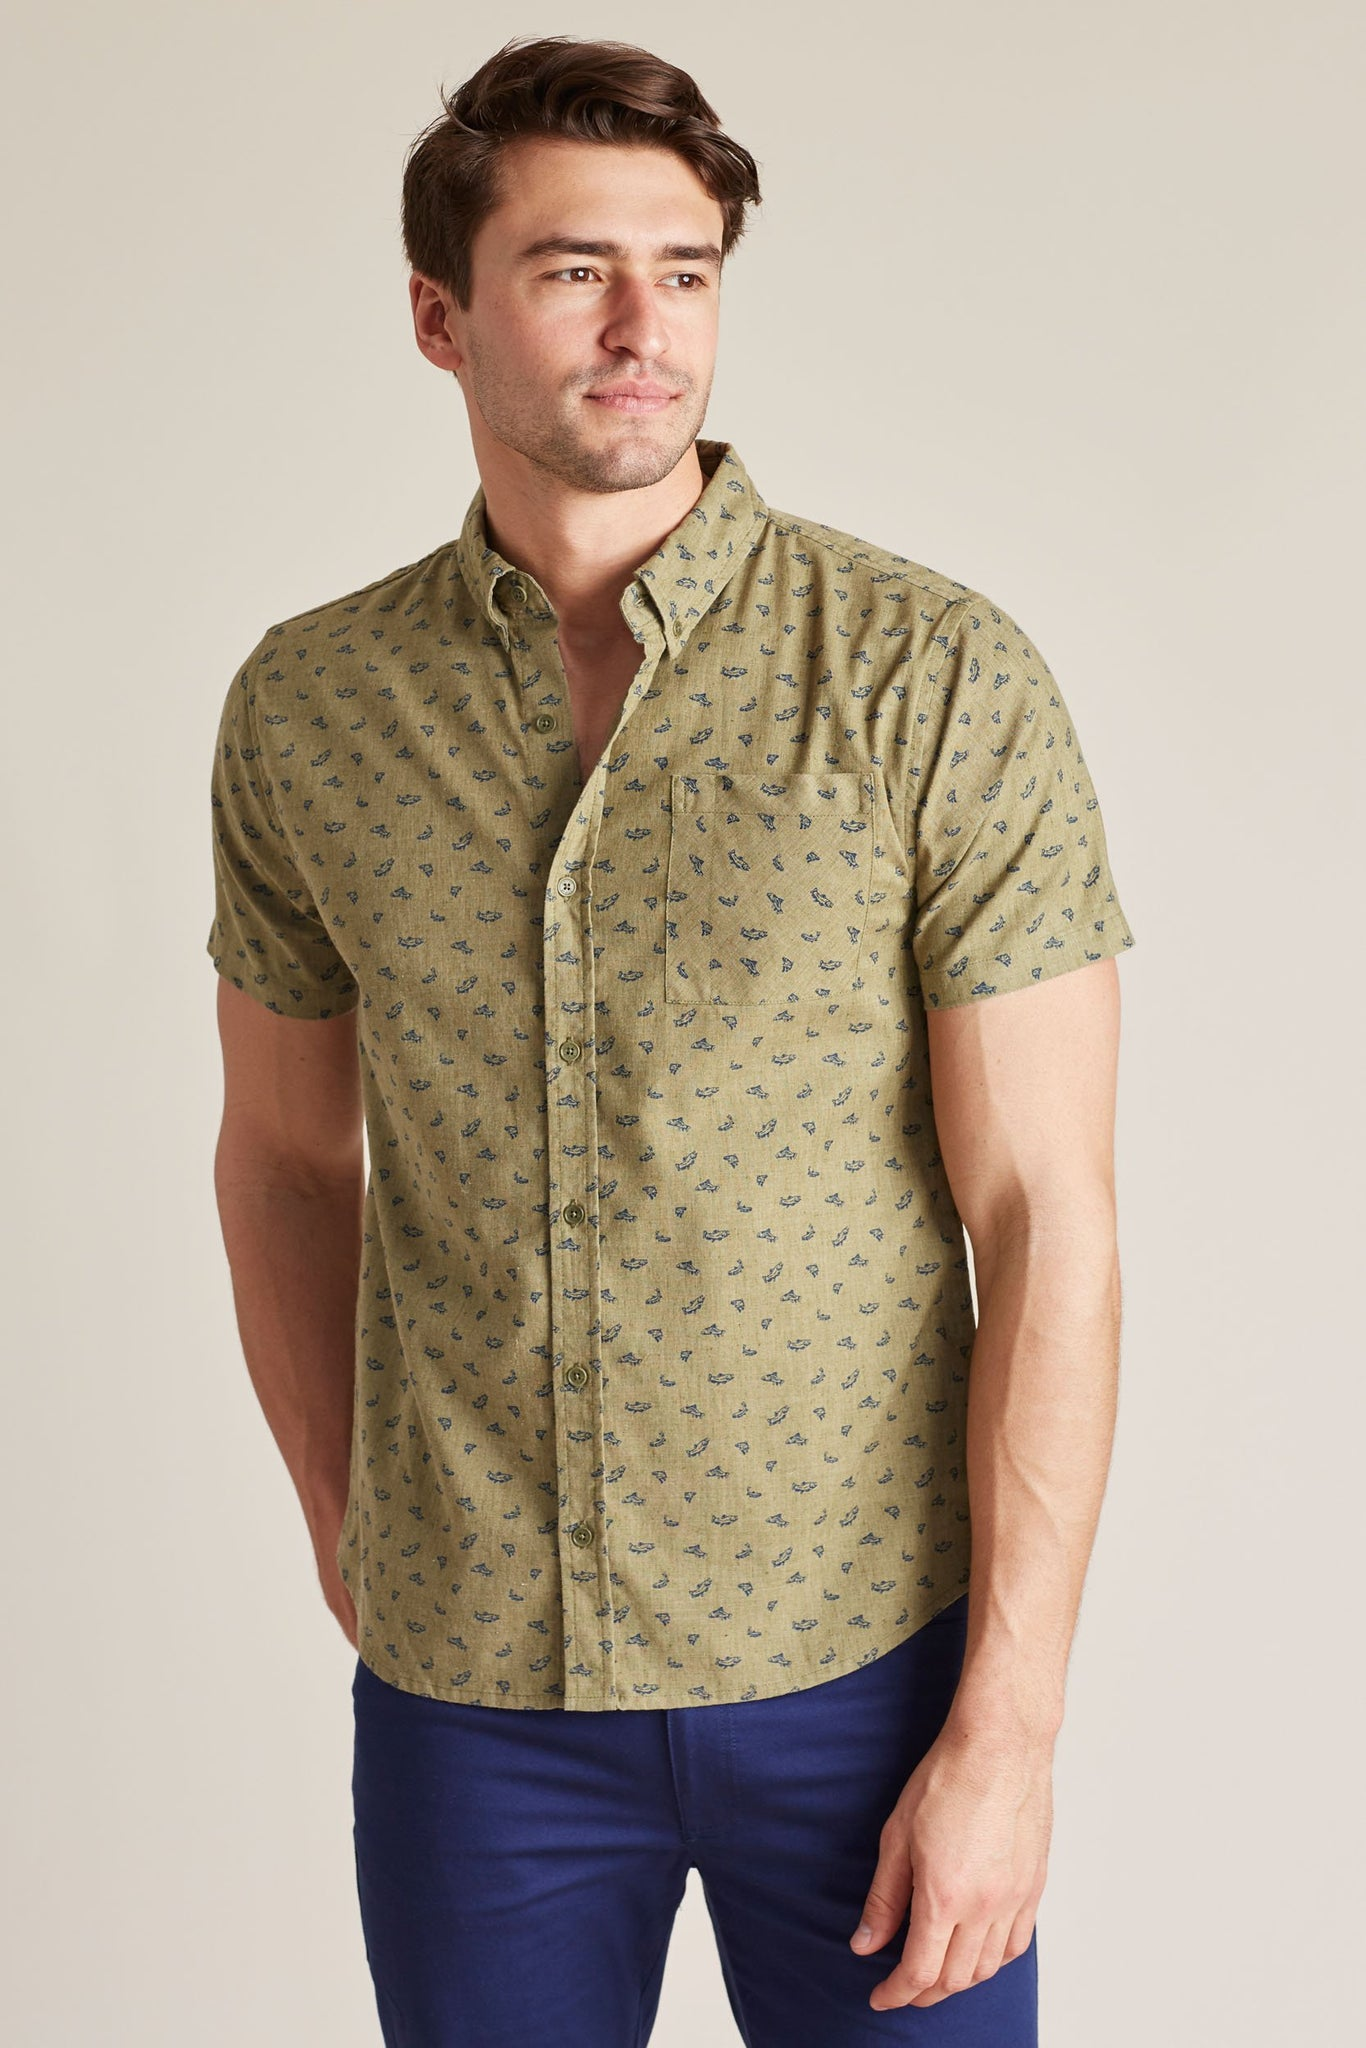 Upstream Print Button Down